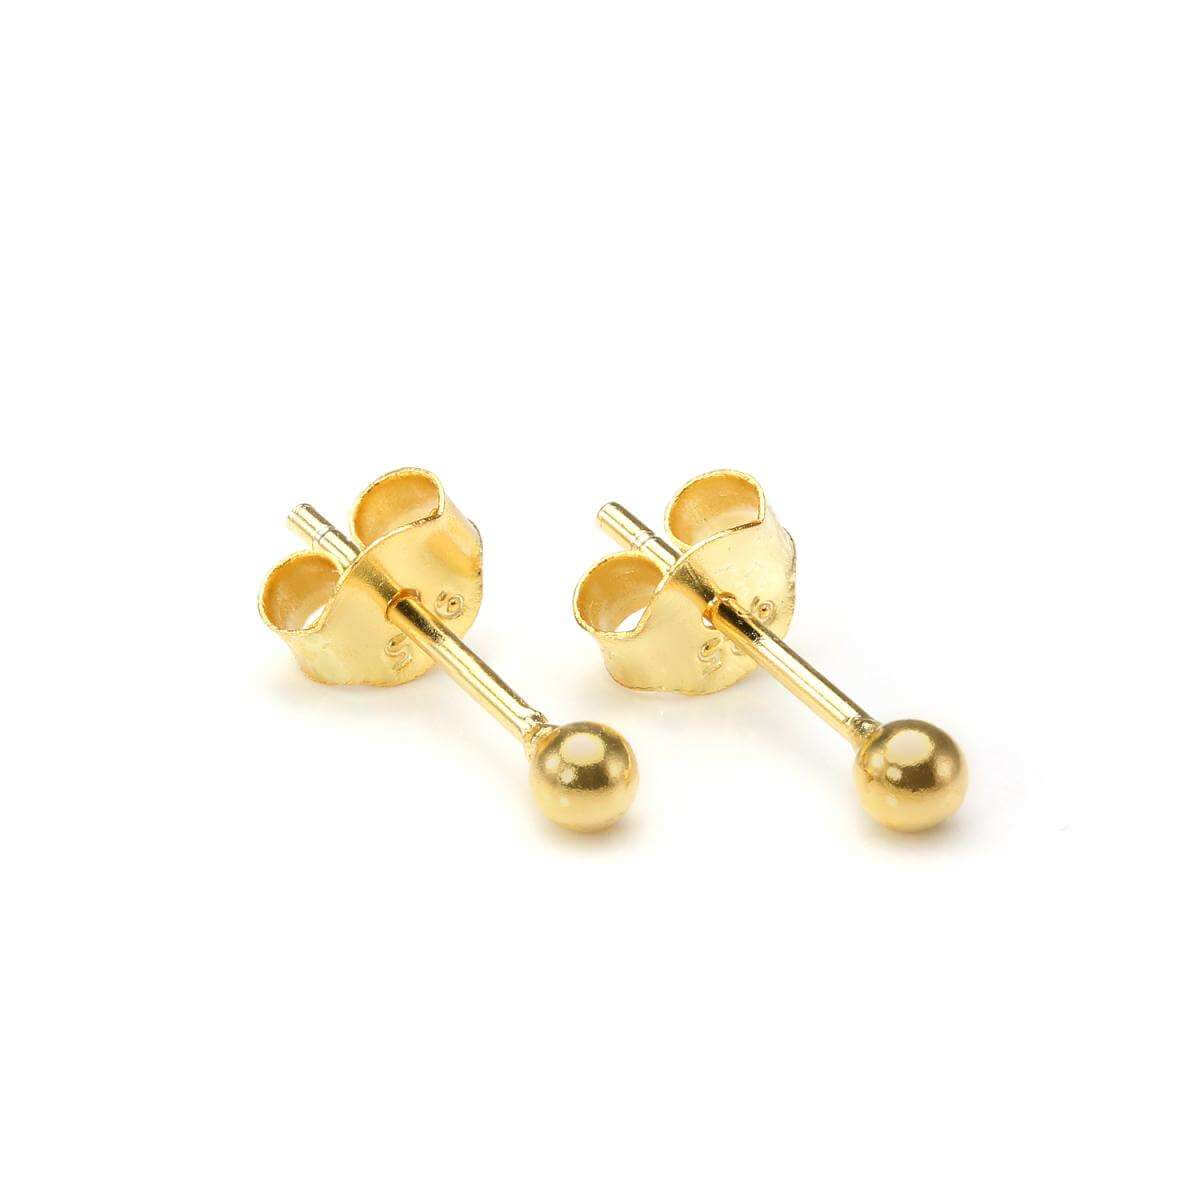 Gold Dipped Small 2mm Sterling Silver Ball Stud Earrings